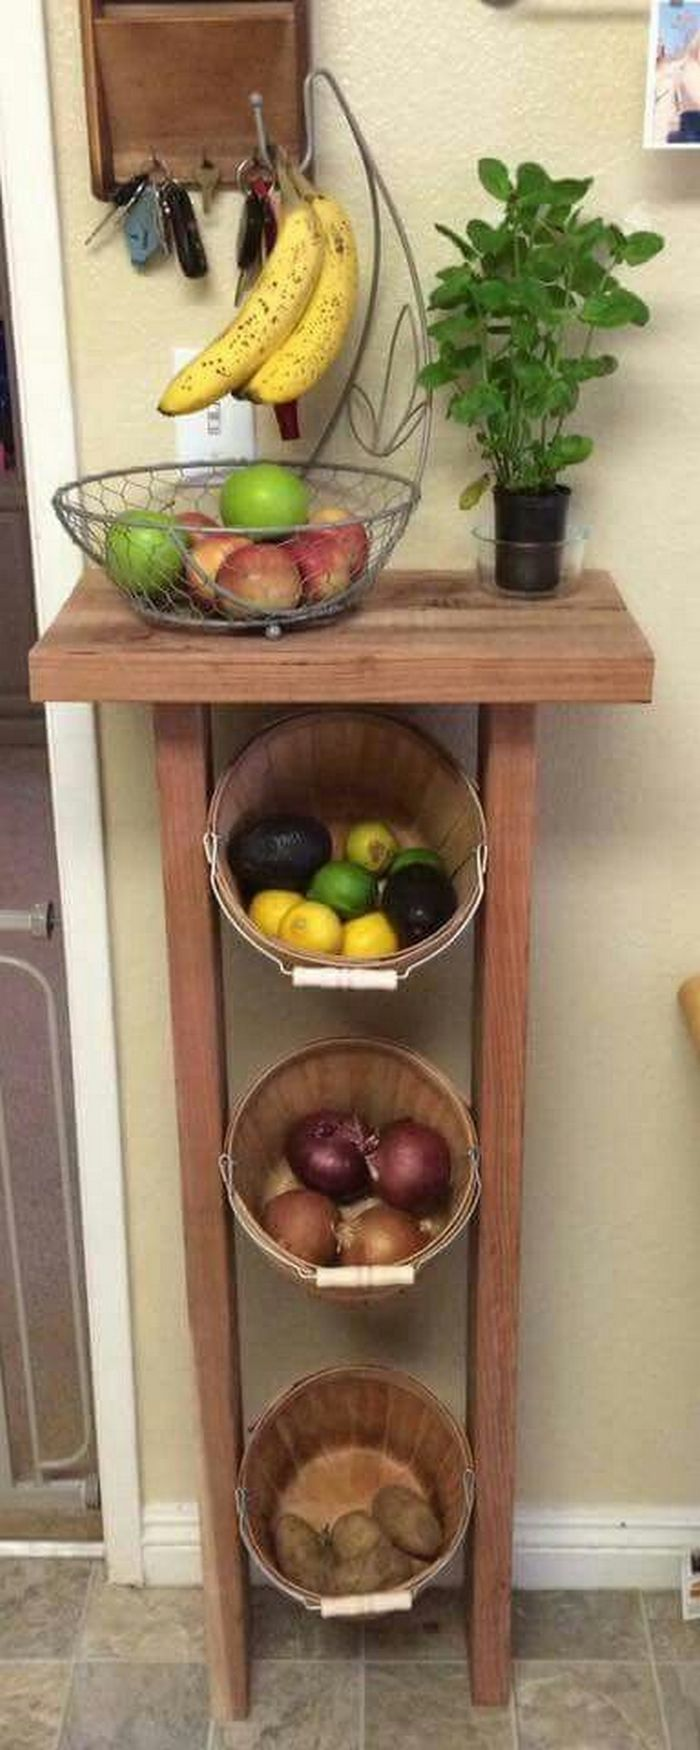 Best 25+ Vegetable storage ideas on Pinterest | Kitchen ...